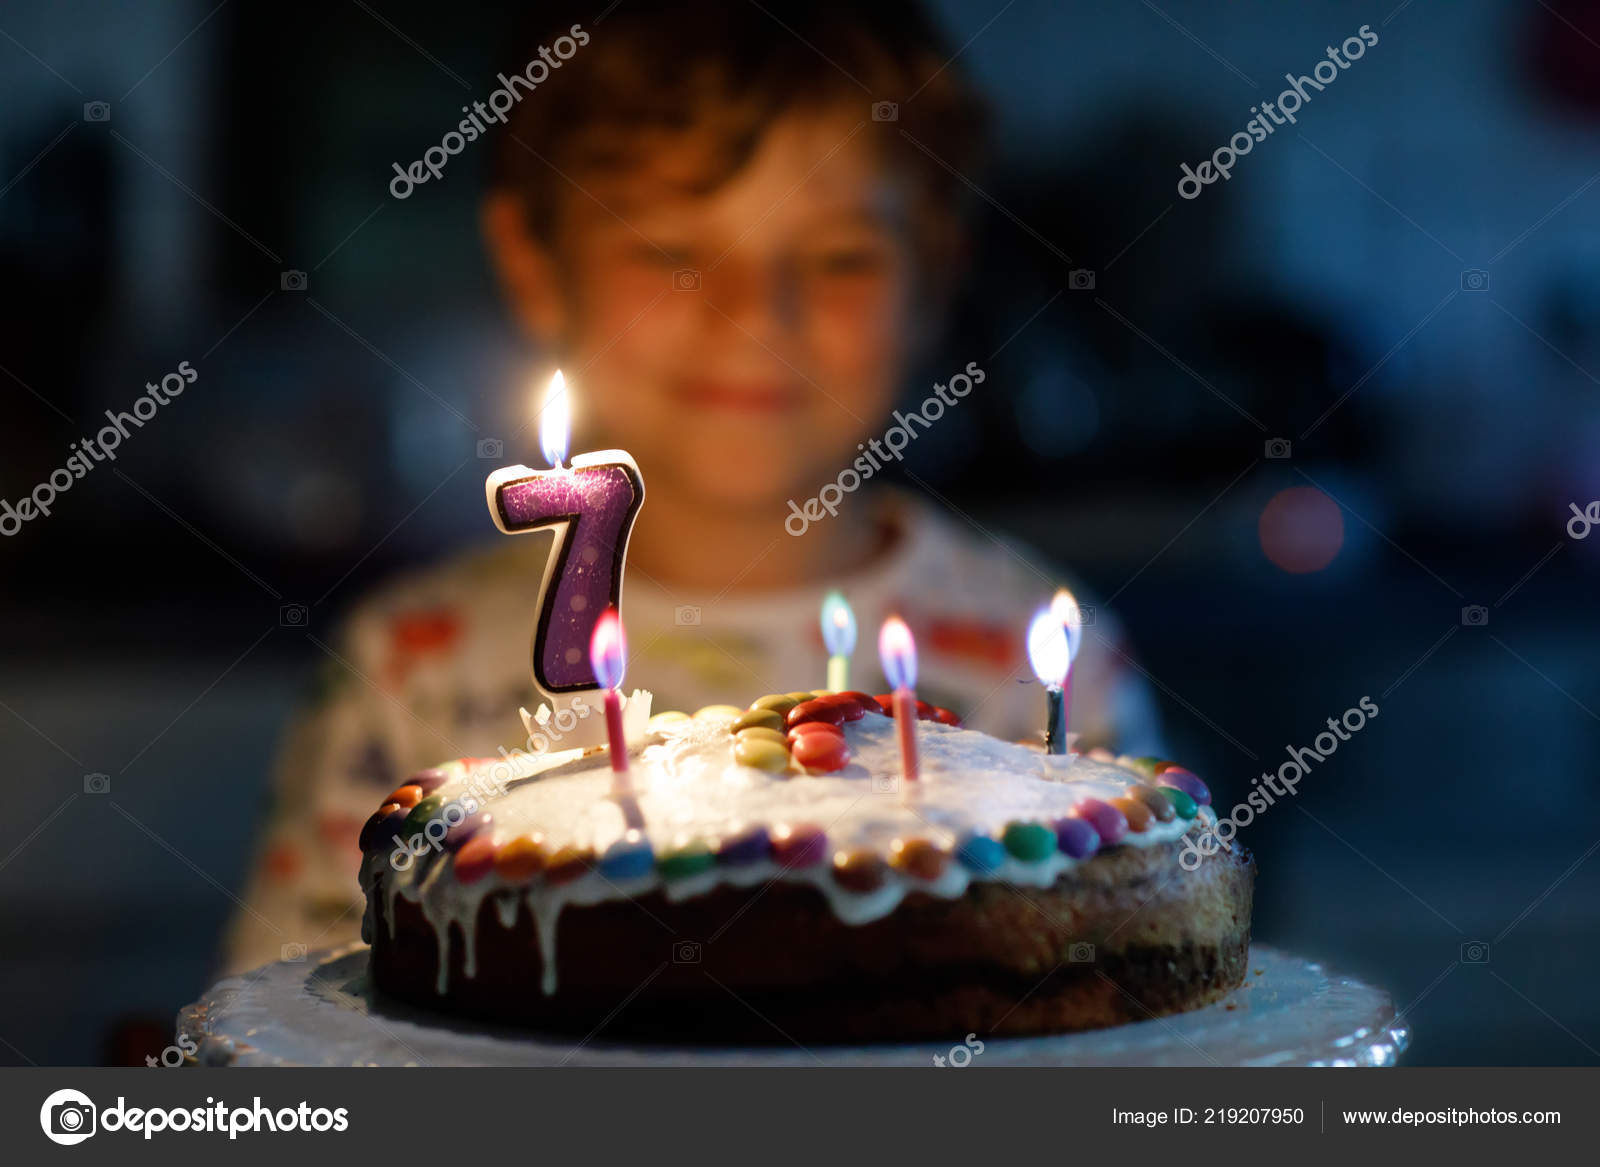 Adorable Happy Blond Little Kid Boy Celebrating His Birthday Child Blowing Seven Candles On Homemade Baked Cake Indoor Party For School Children